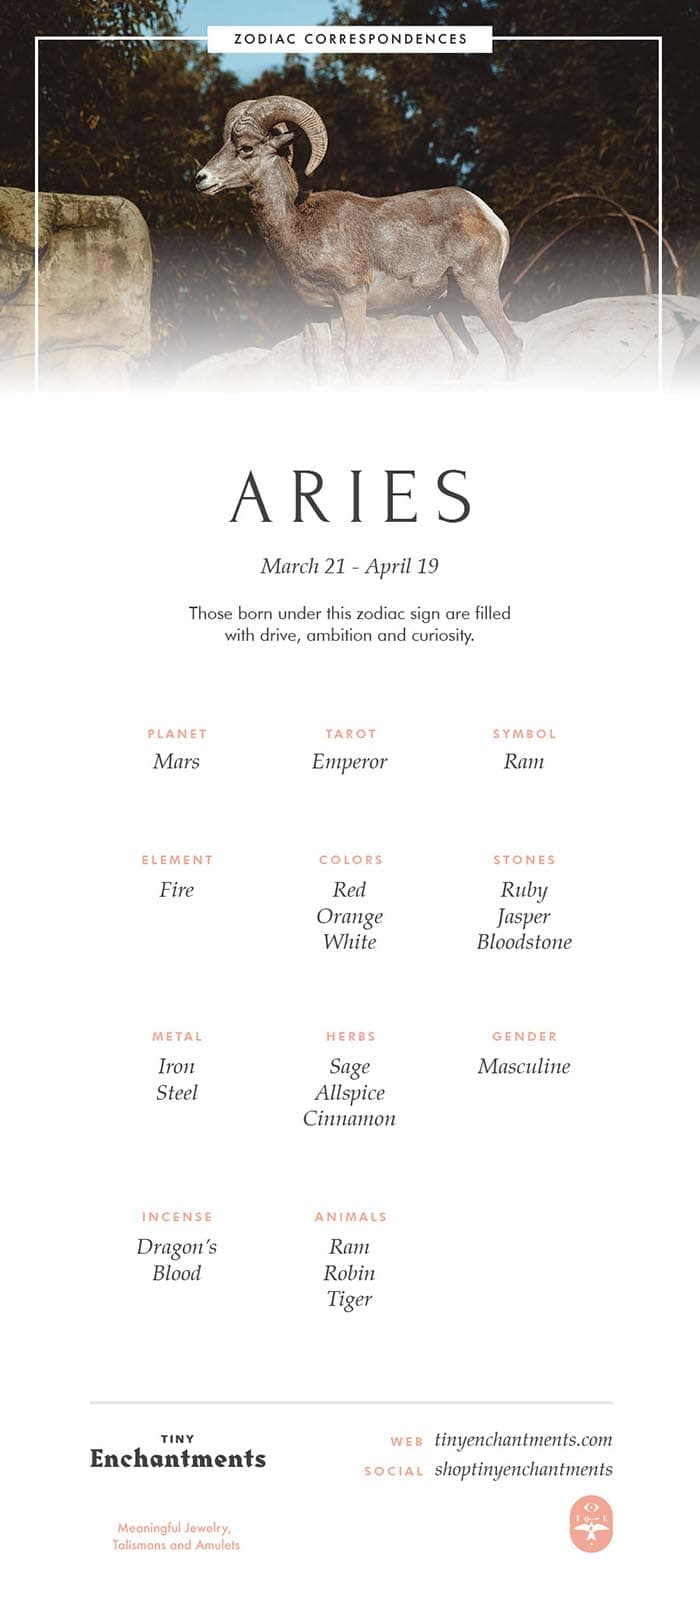 Aries Zodiac Sign Correspondences - Aries Personality, Aries Symbol, Aries Mythology and Aries Meaning Full Infographic